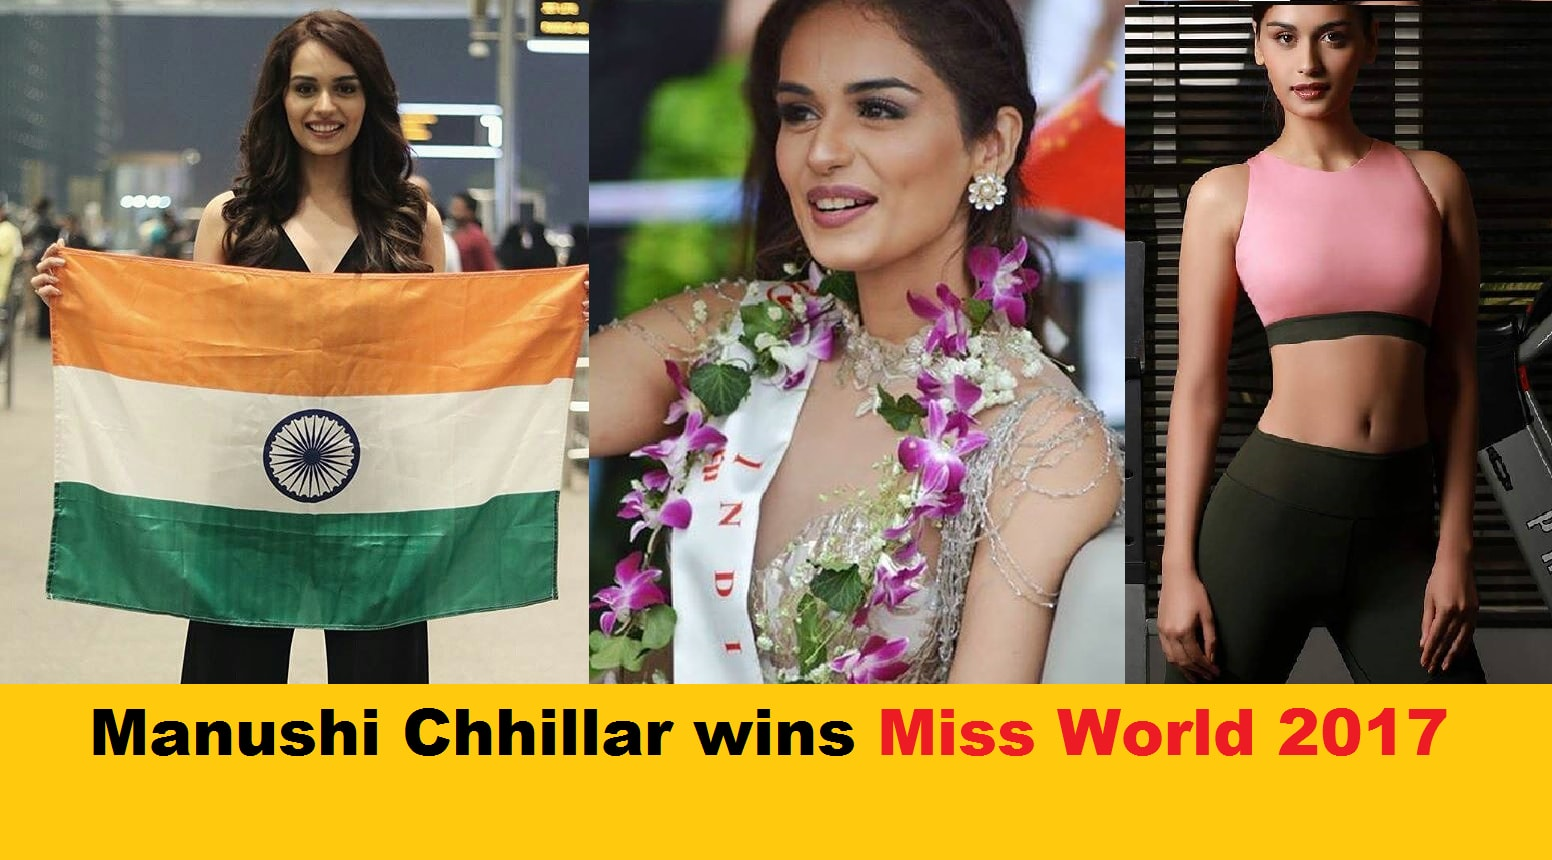 Manushi Chhillar Just Won The Miss World 2017 Title! & Her Pics Will Make You Fall In Love #ProudMoment